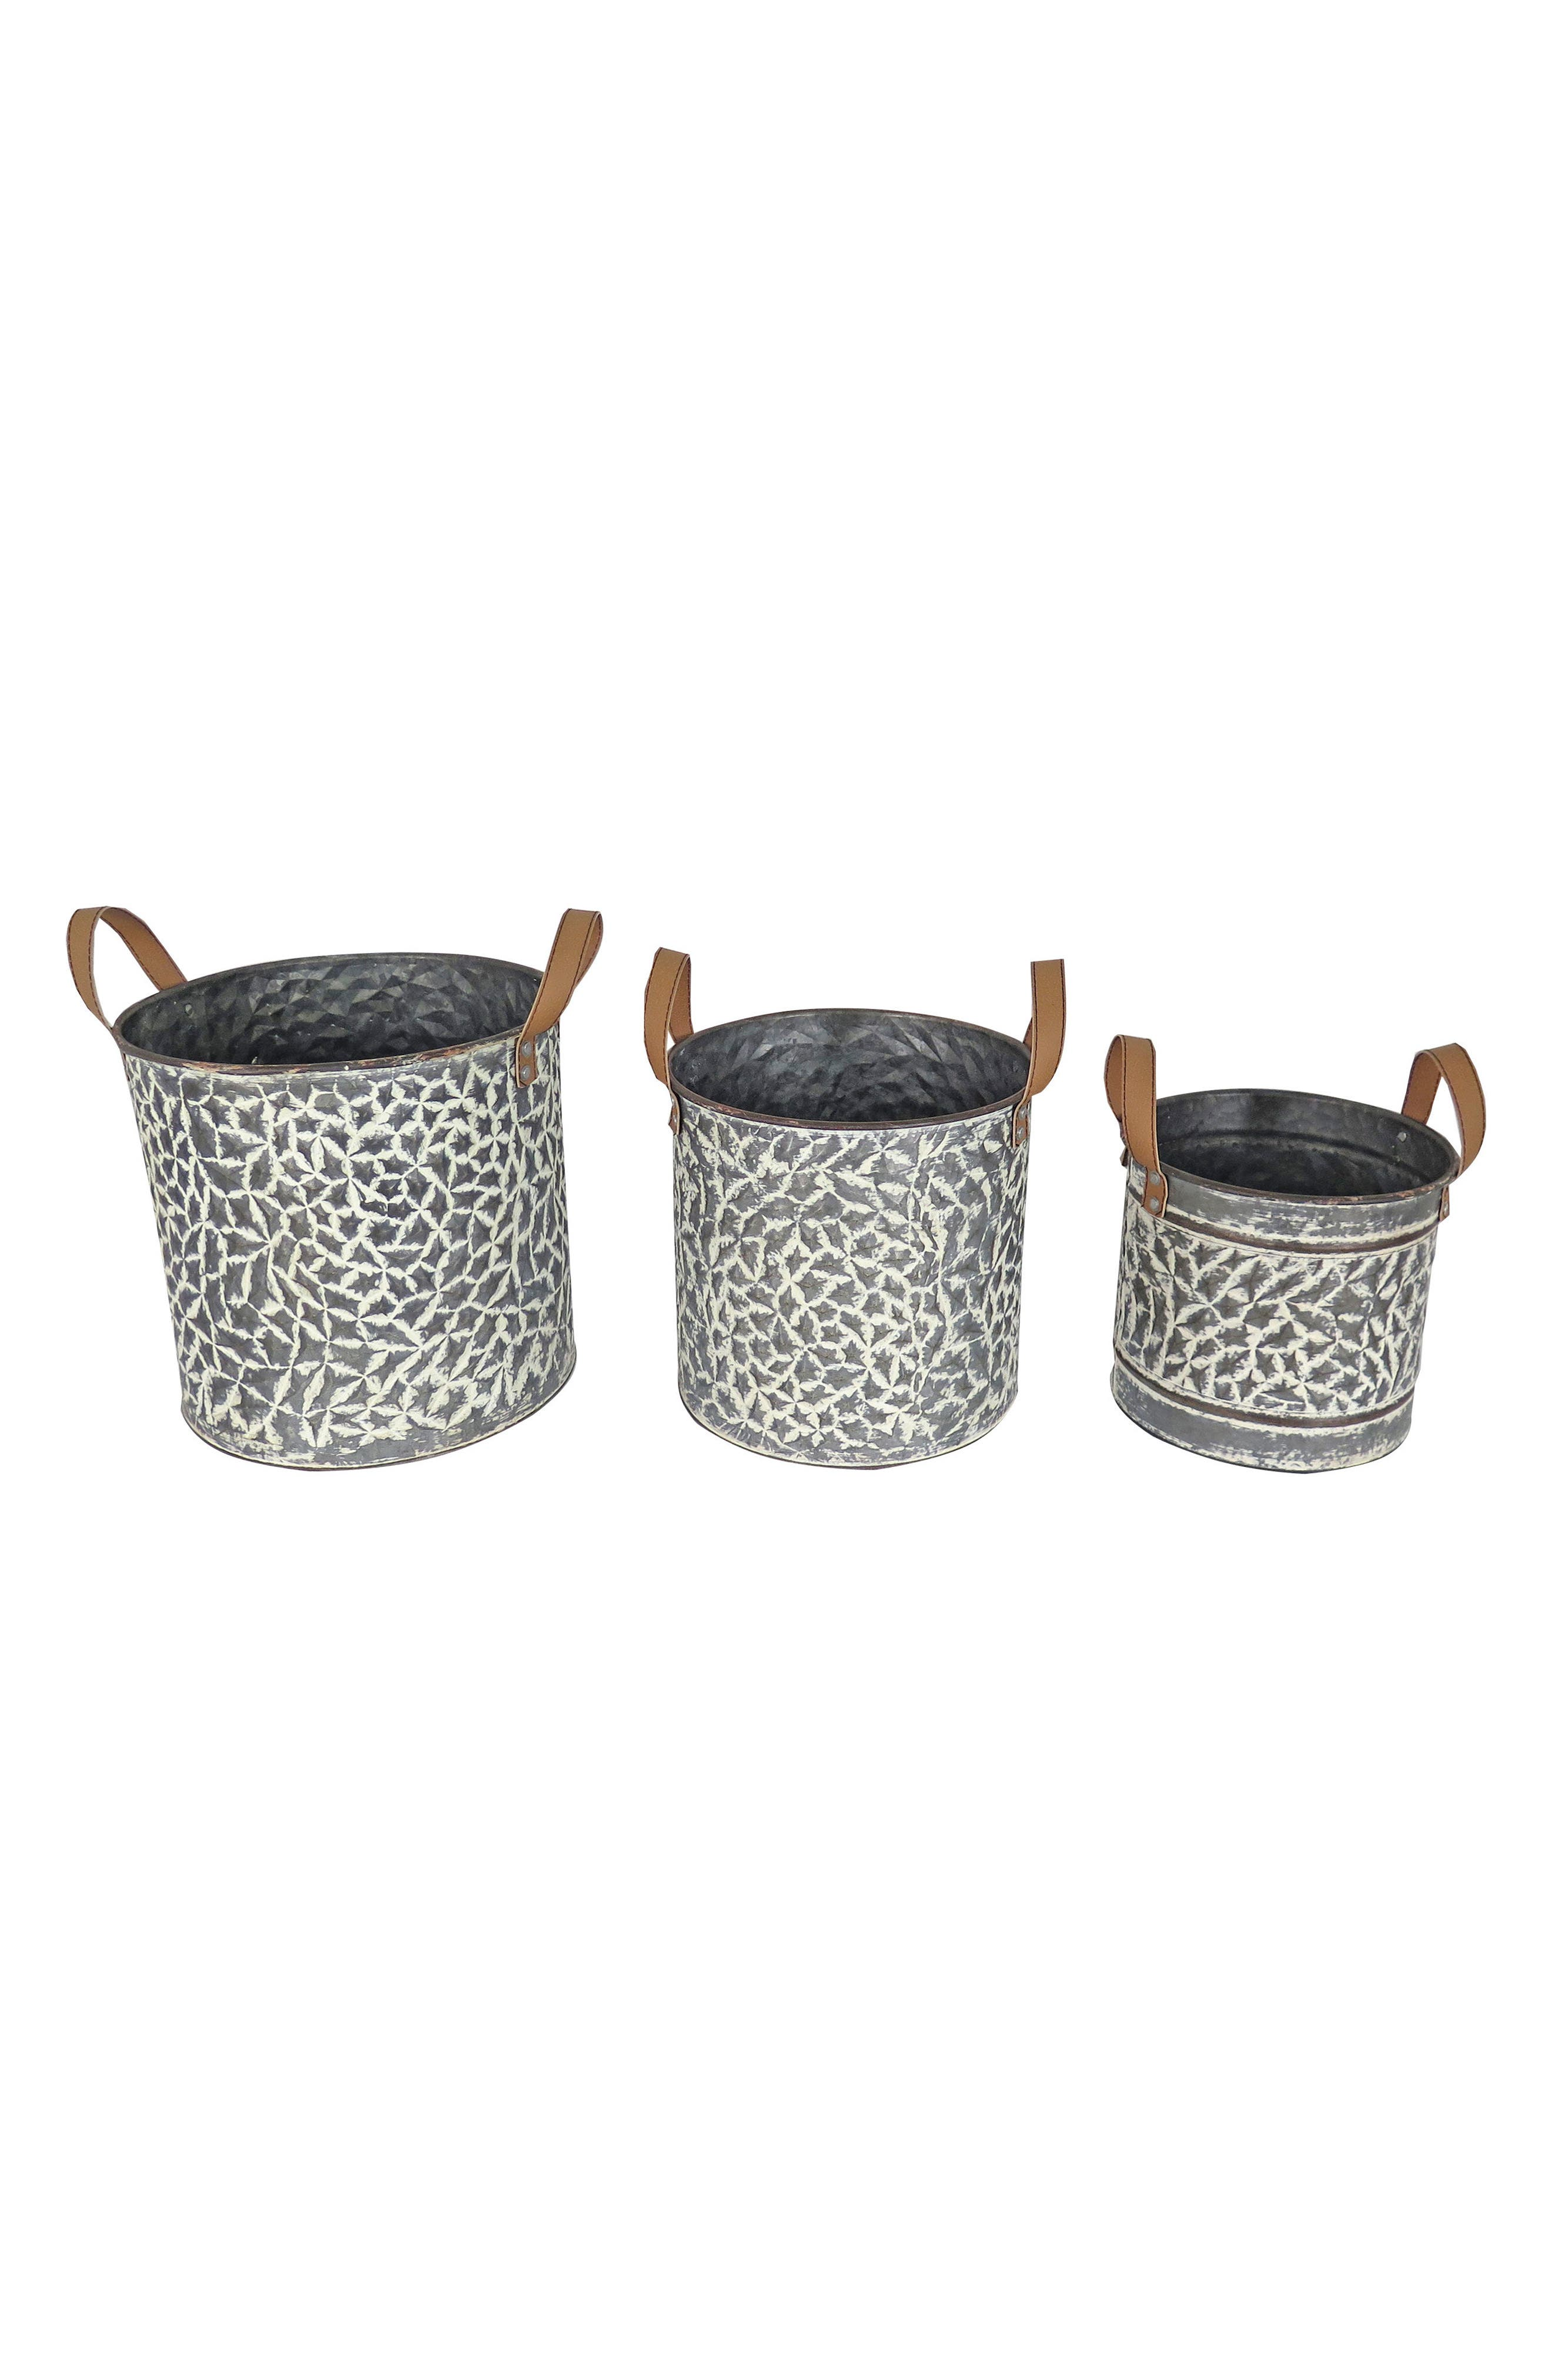 Langford Set of 3 Buckets,                         Main,                         color, 040